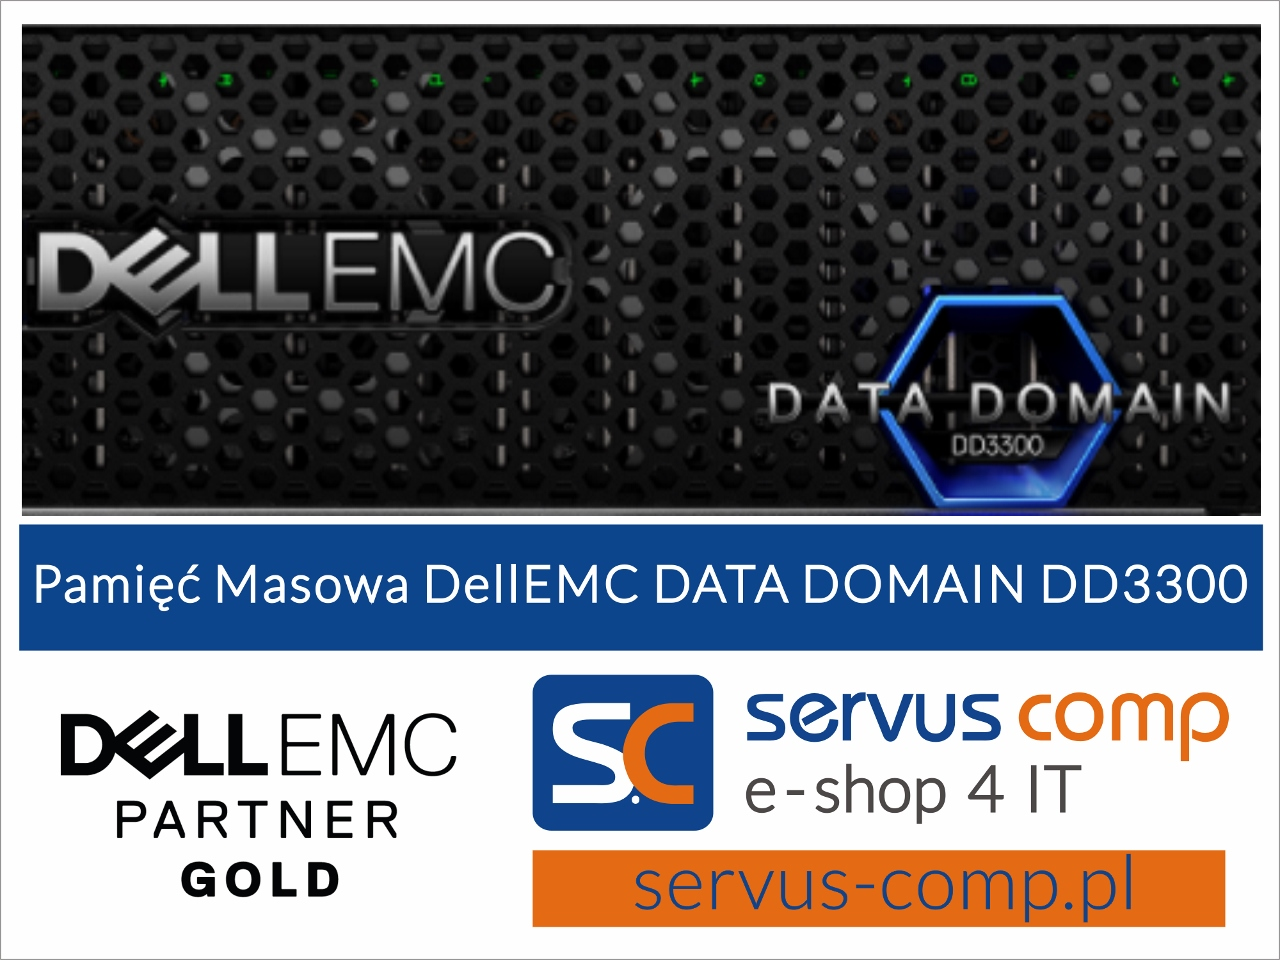 Pamięc Masowa Dell EMC DATA DOMAIN DD3300 Servus Comp Dell EMC GOLD